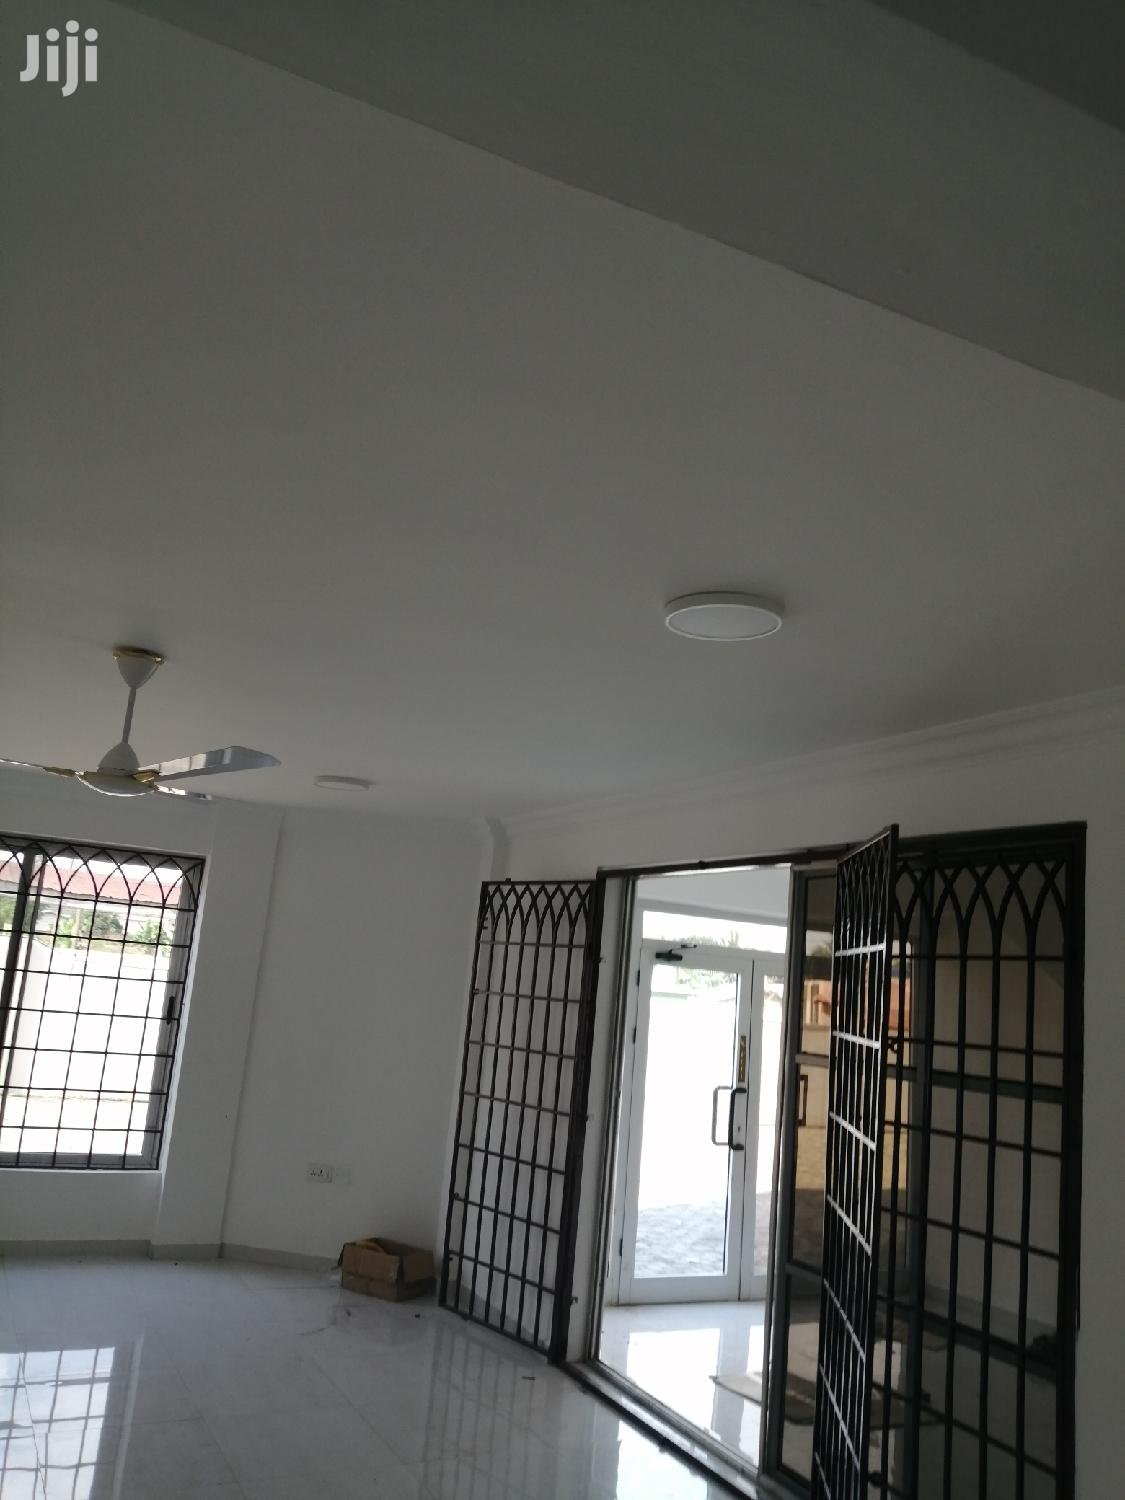 Newly Built 3 Bedroom Ensuit Apartment For Rent | Houses & Apartments For Rent for sale in Accra Metropolitan, Greater Accra, Ghana